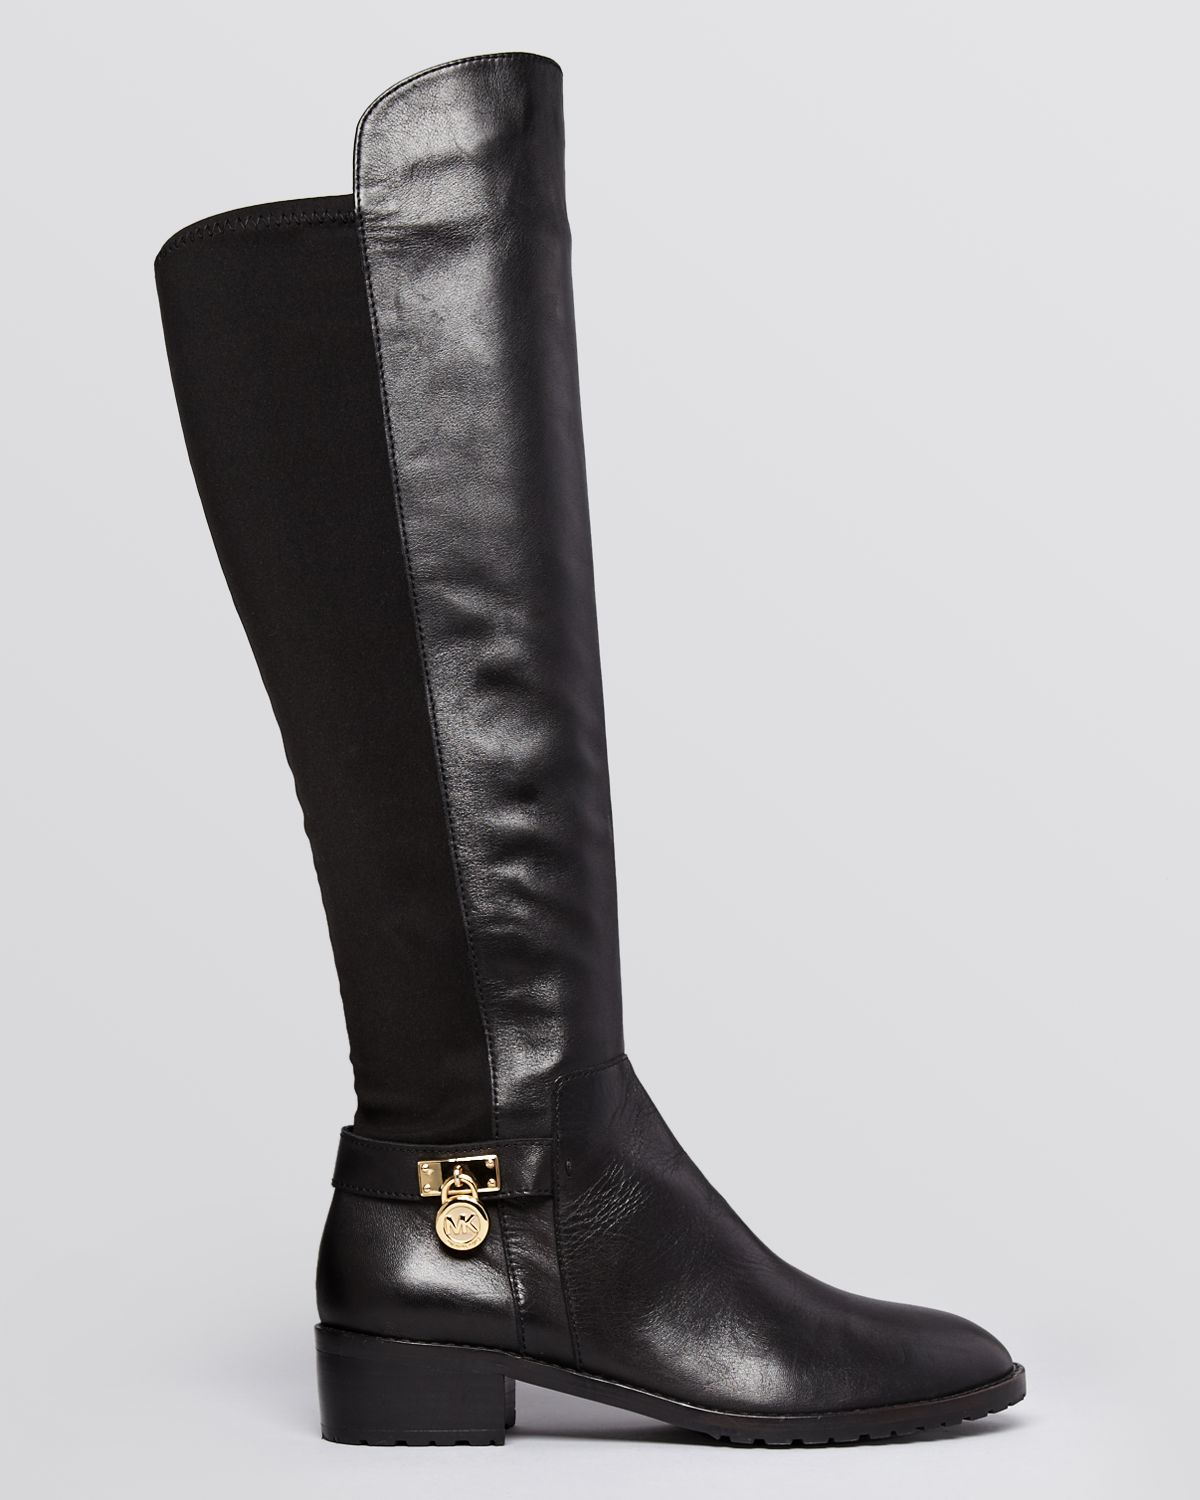 Michael michael kors Stretch Boots Hamilton in Black | Lyst